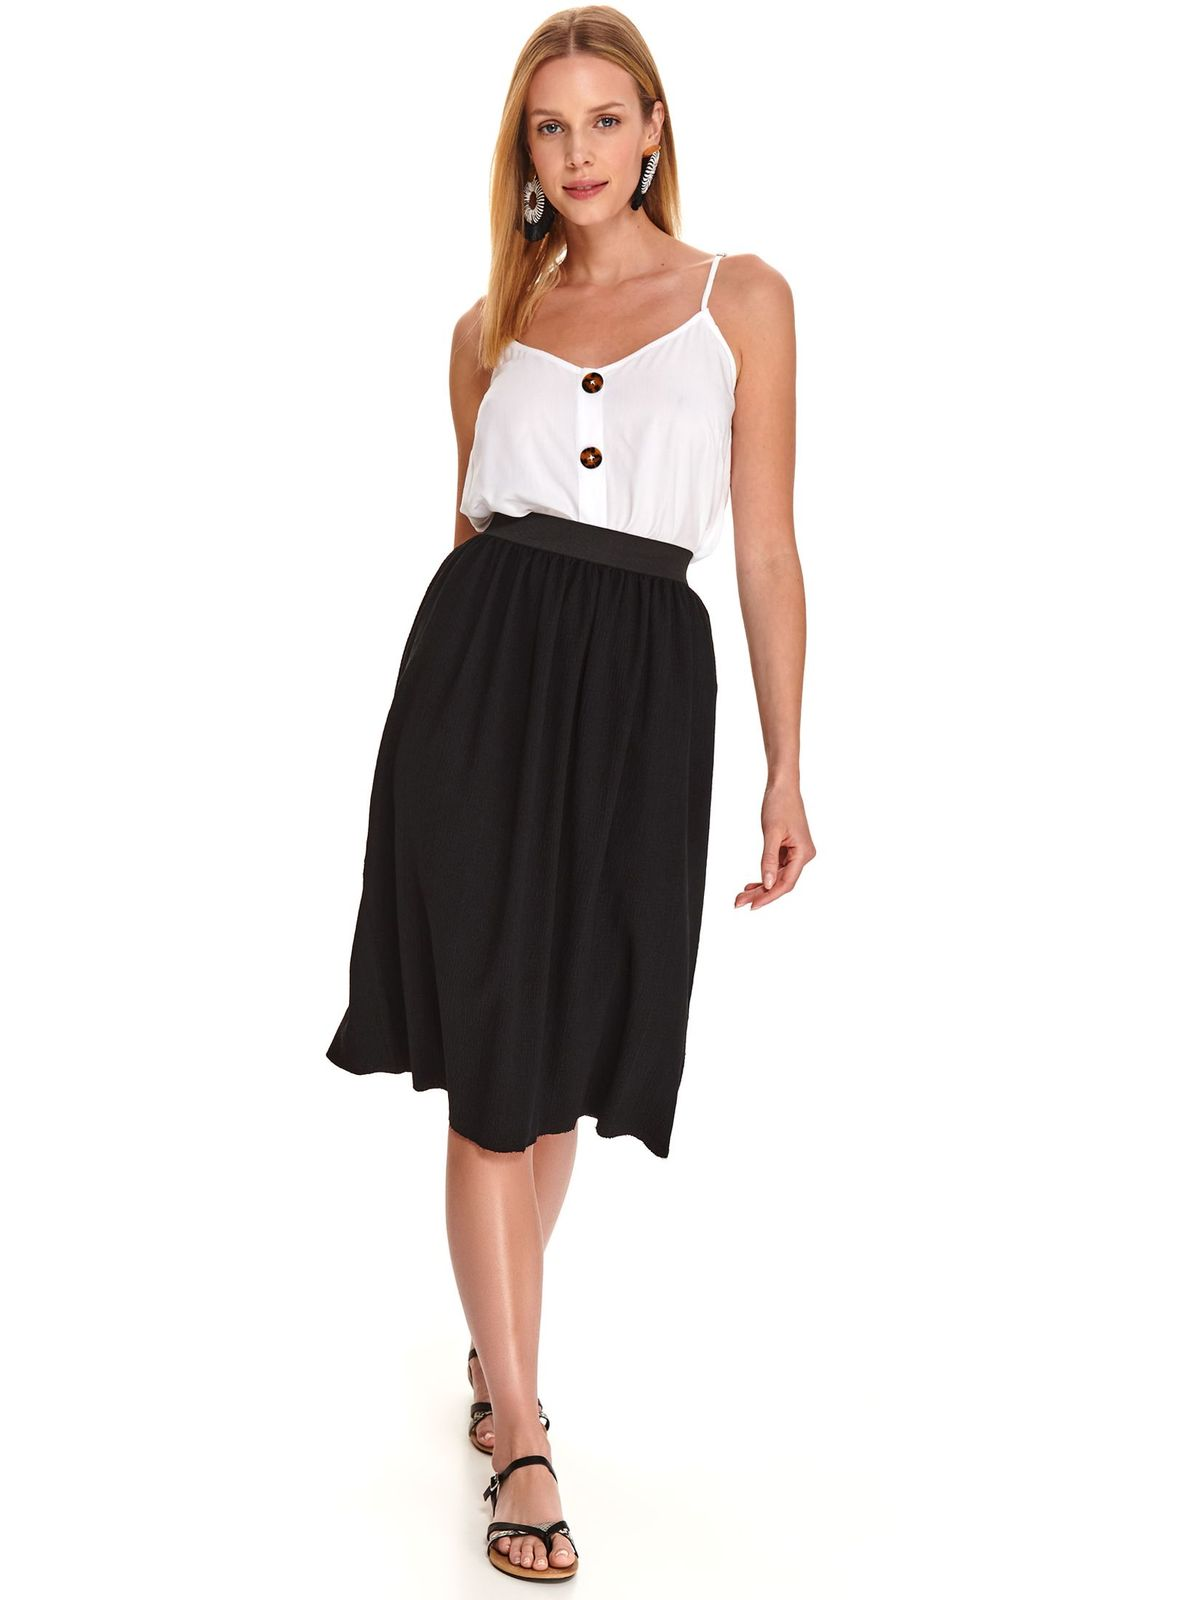 Black skirt casual midi thin fabric flaring cut